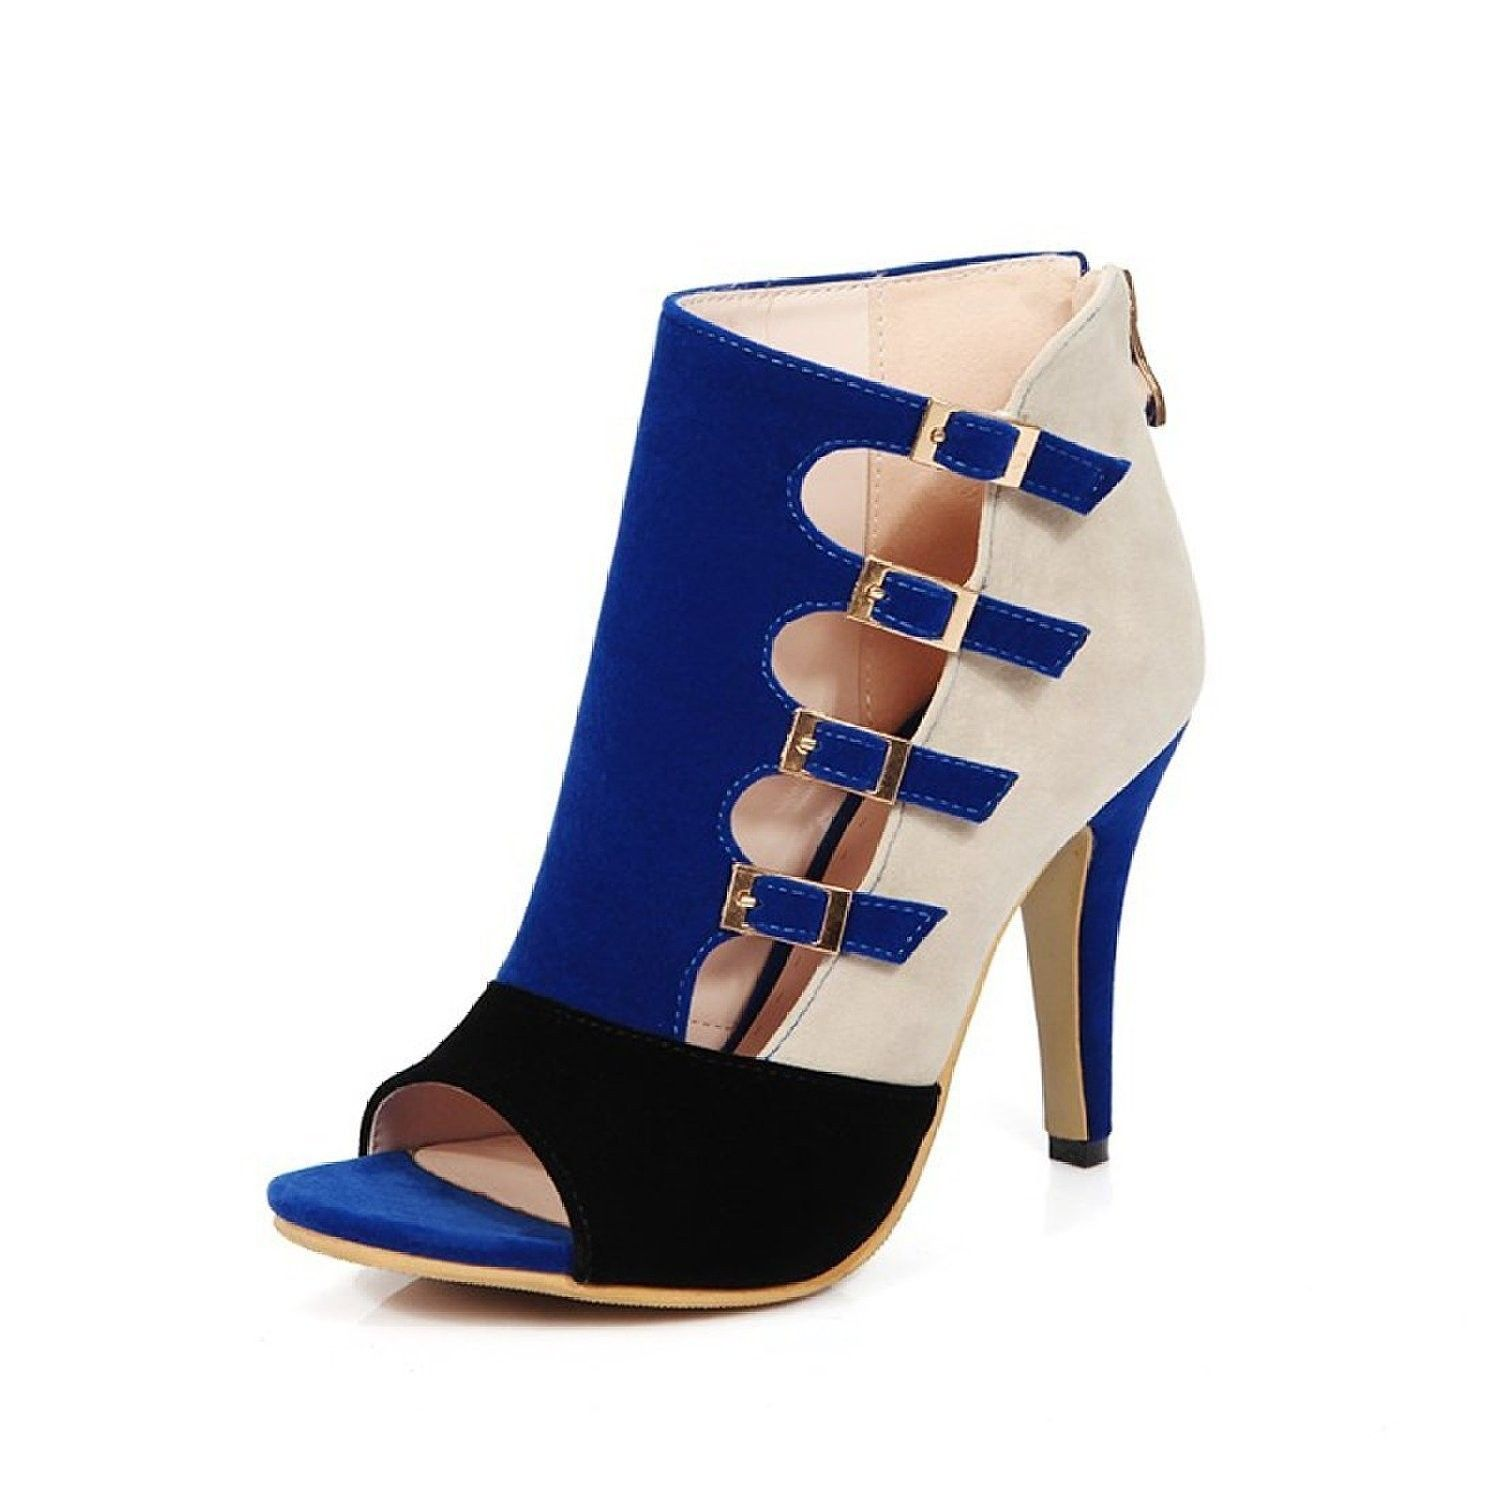 7f9cafbf38e6 Women s Peep Toe Sexy High Heels Ankle Pumps Cutout Ankle Booties - Blue -  CW12I90JEY7 - Women s Shoes